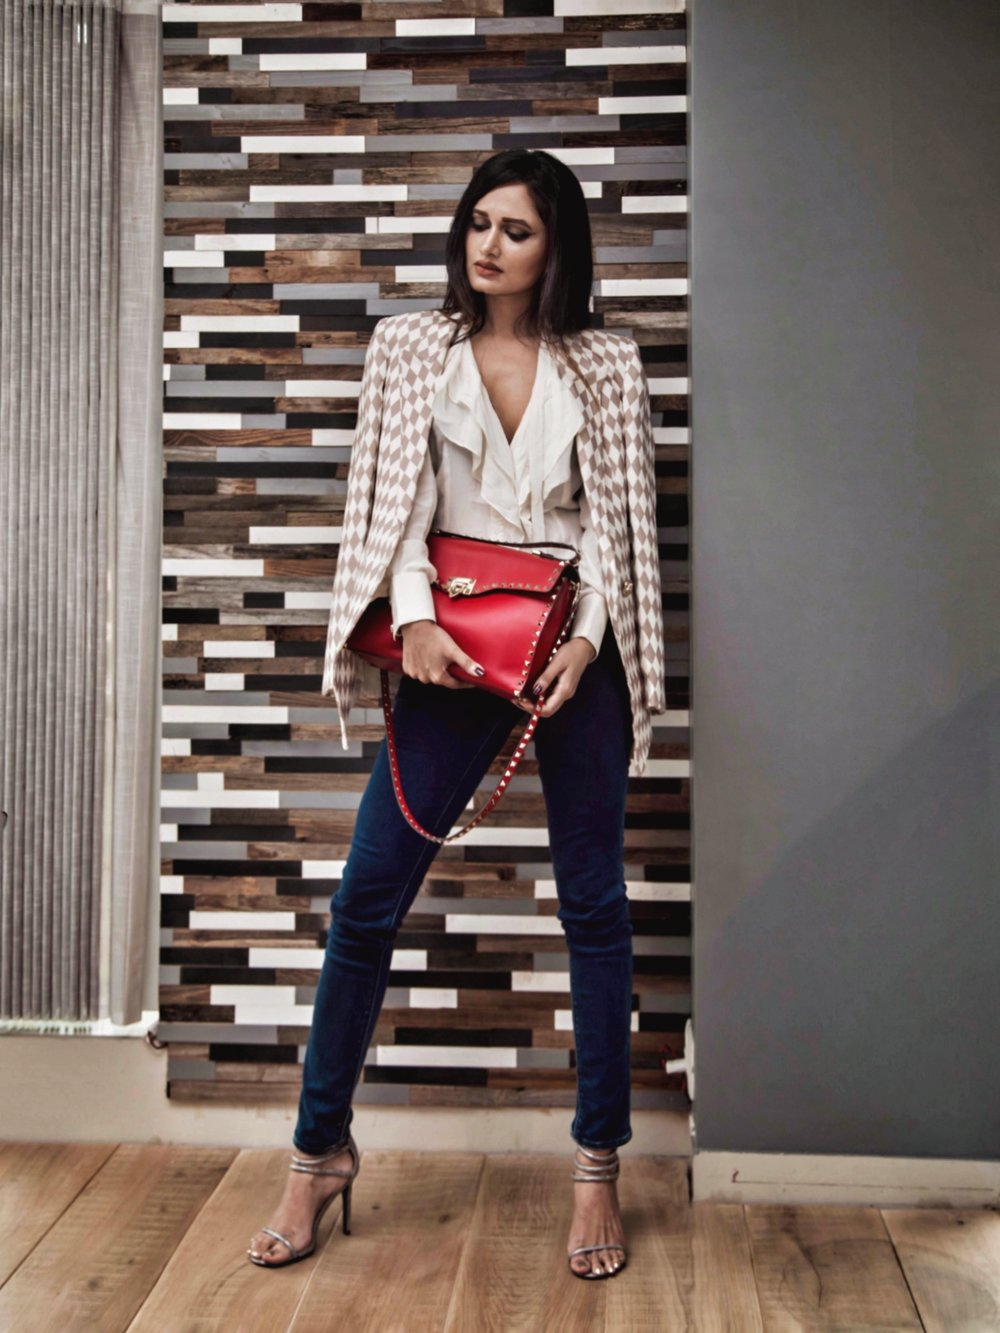 The-Chic-Armoire-Nidhi-Kunder-Karn-Malotra-6